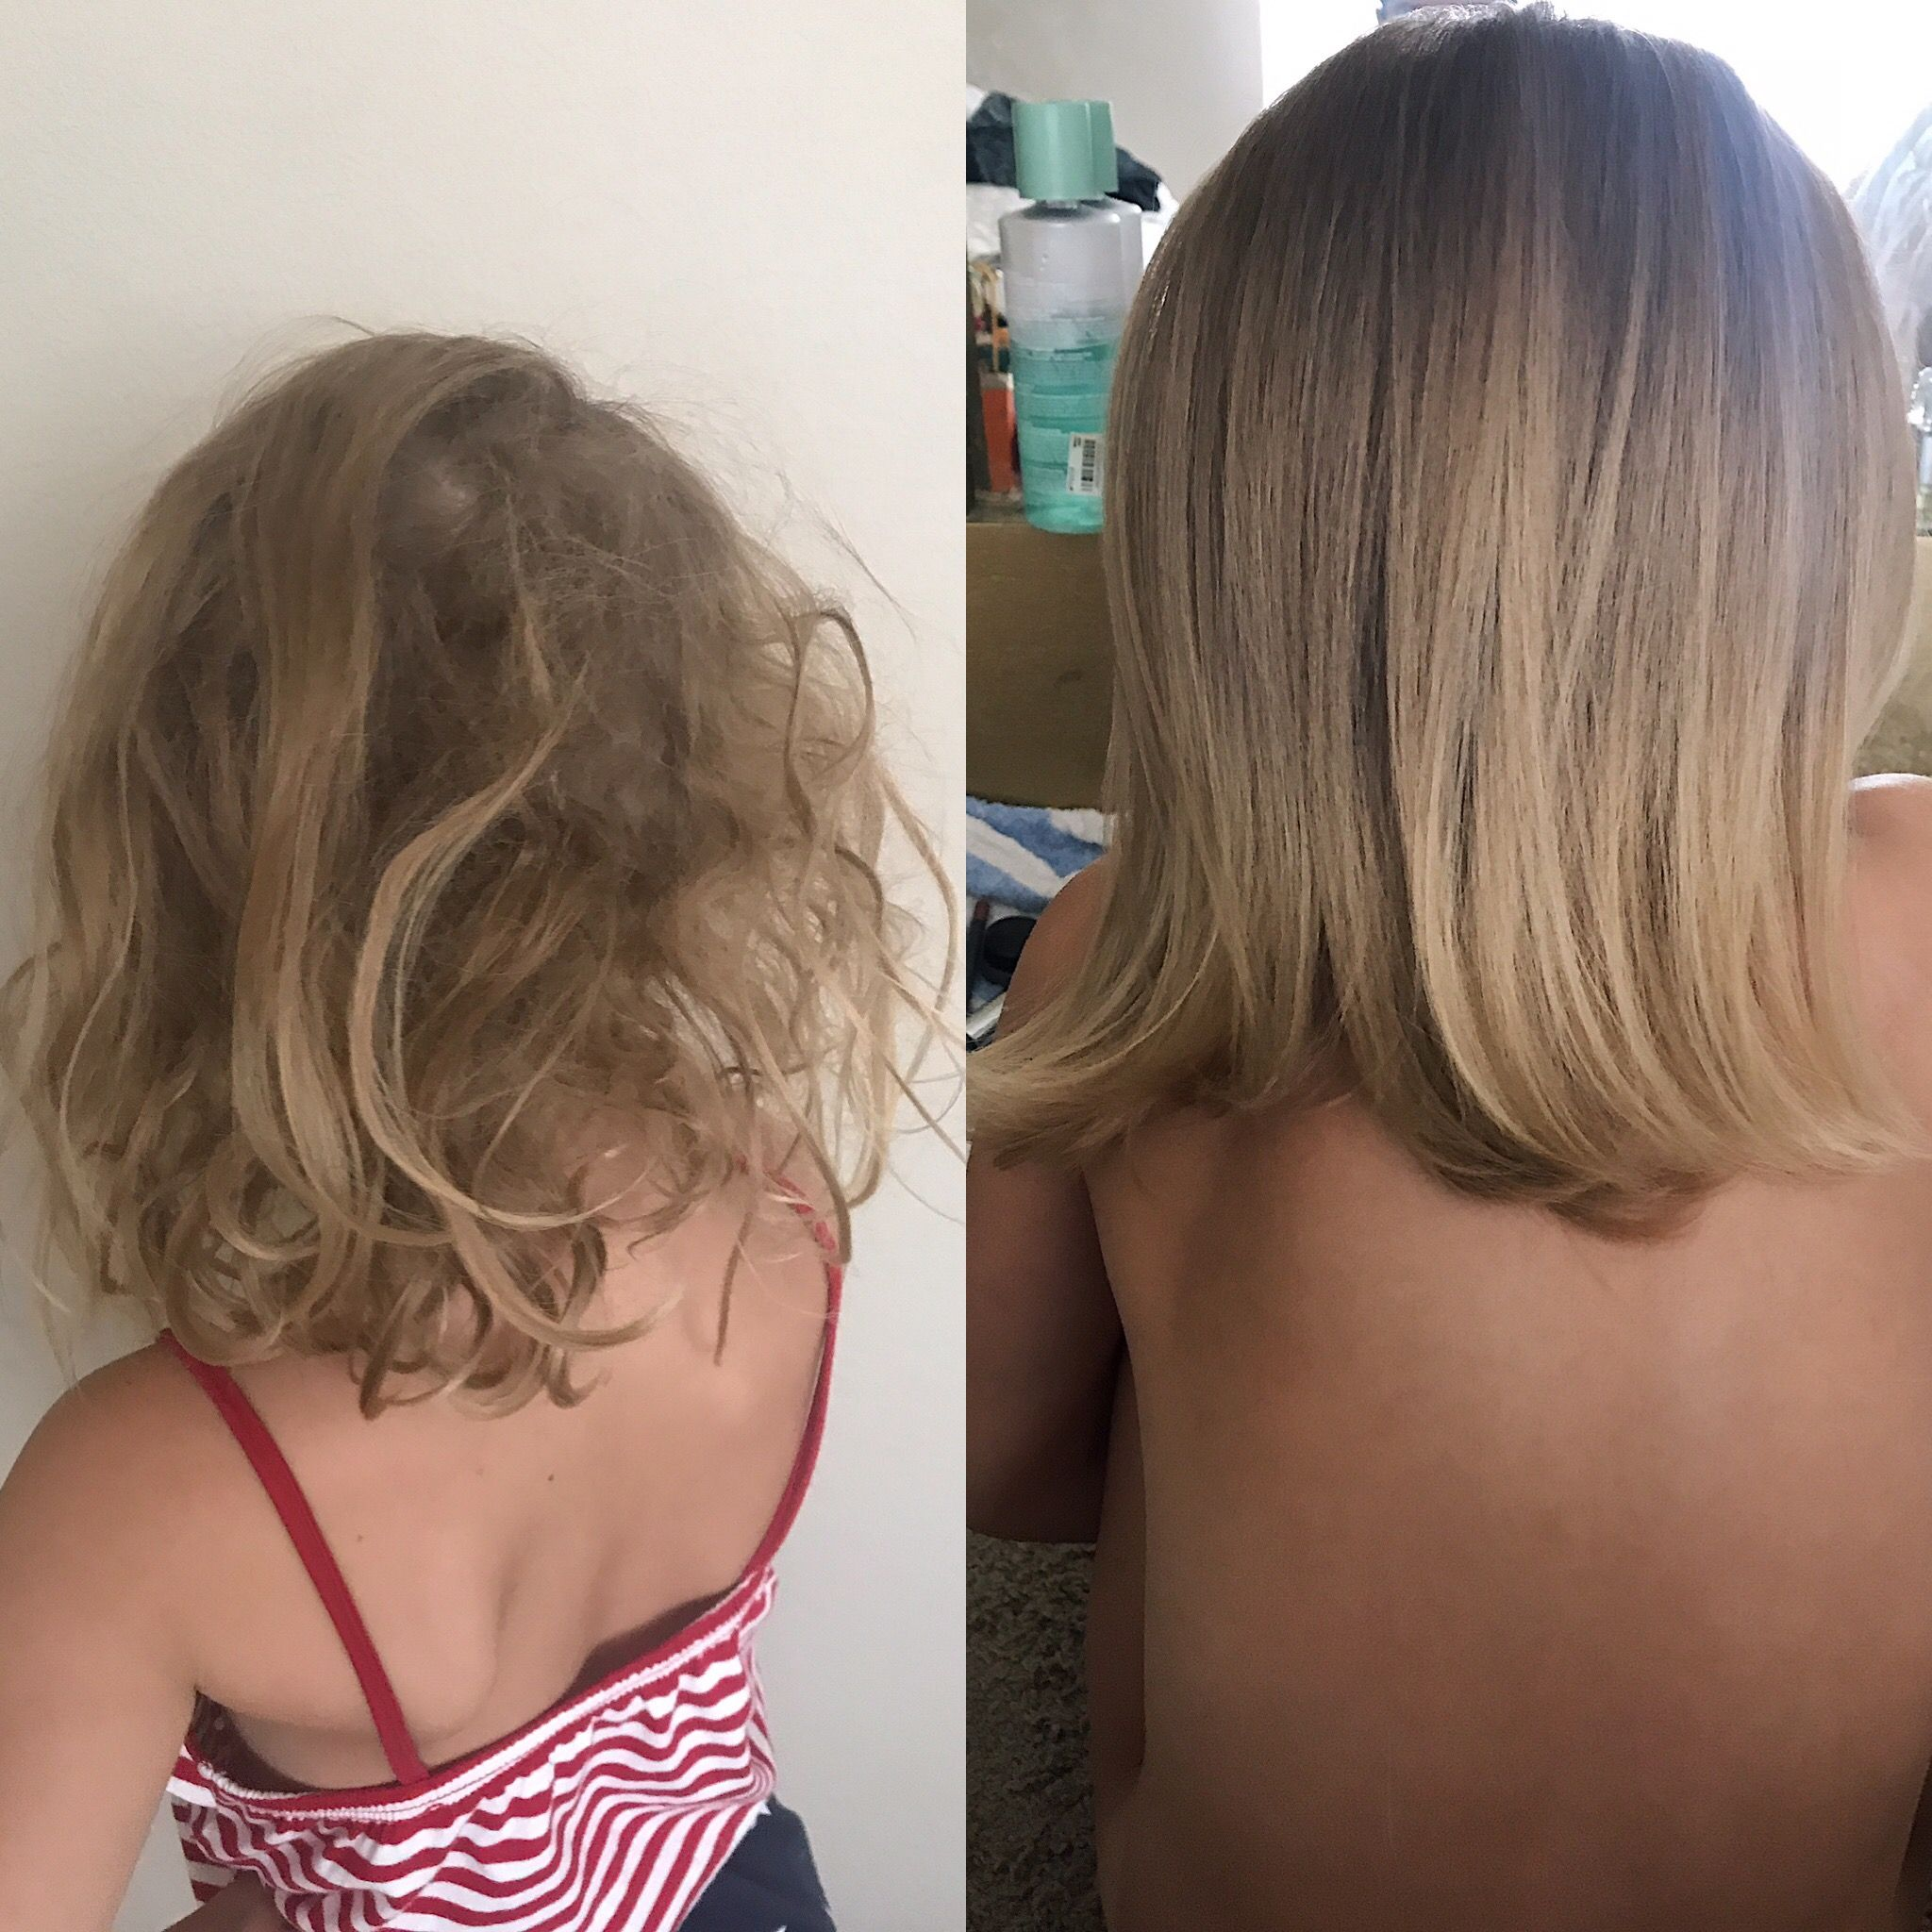 Did you know monat is for children too it can help in so many ways